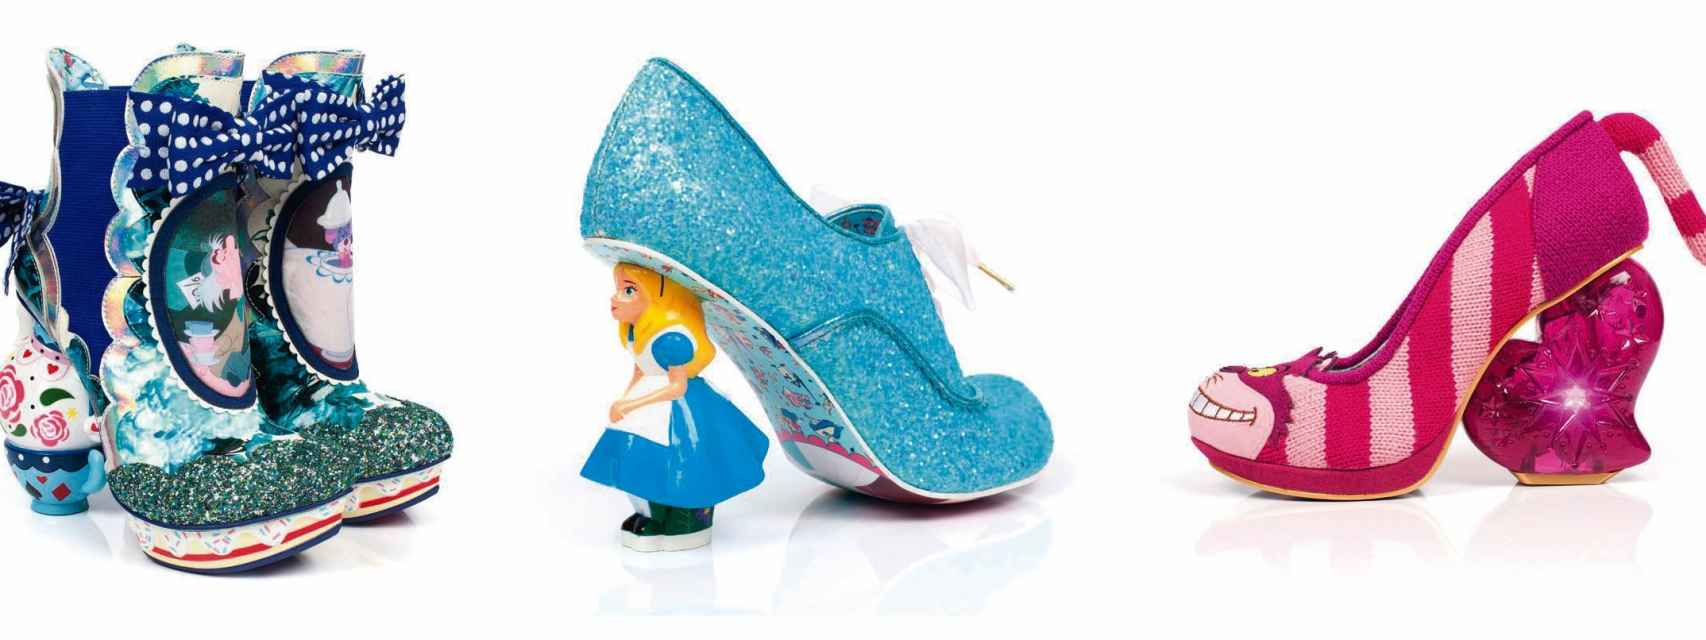 Modelos Irregular Choice